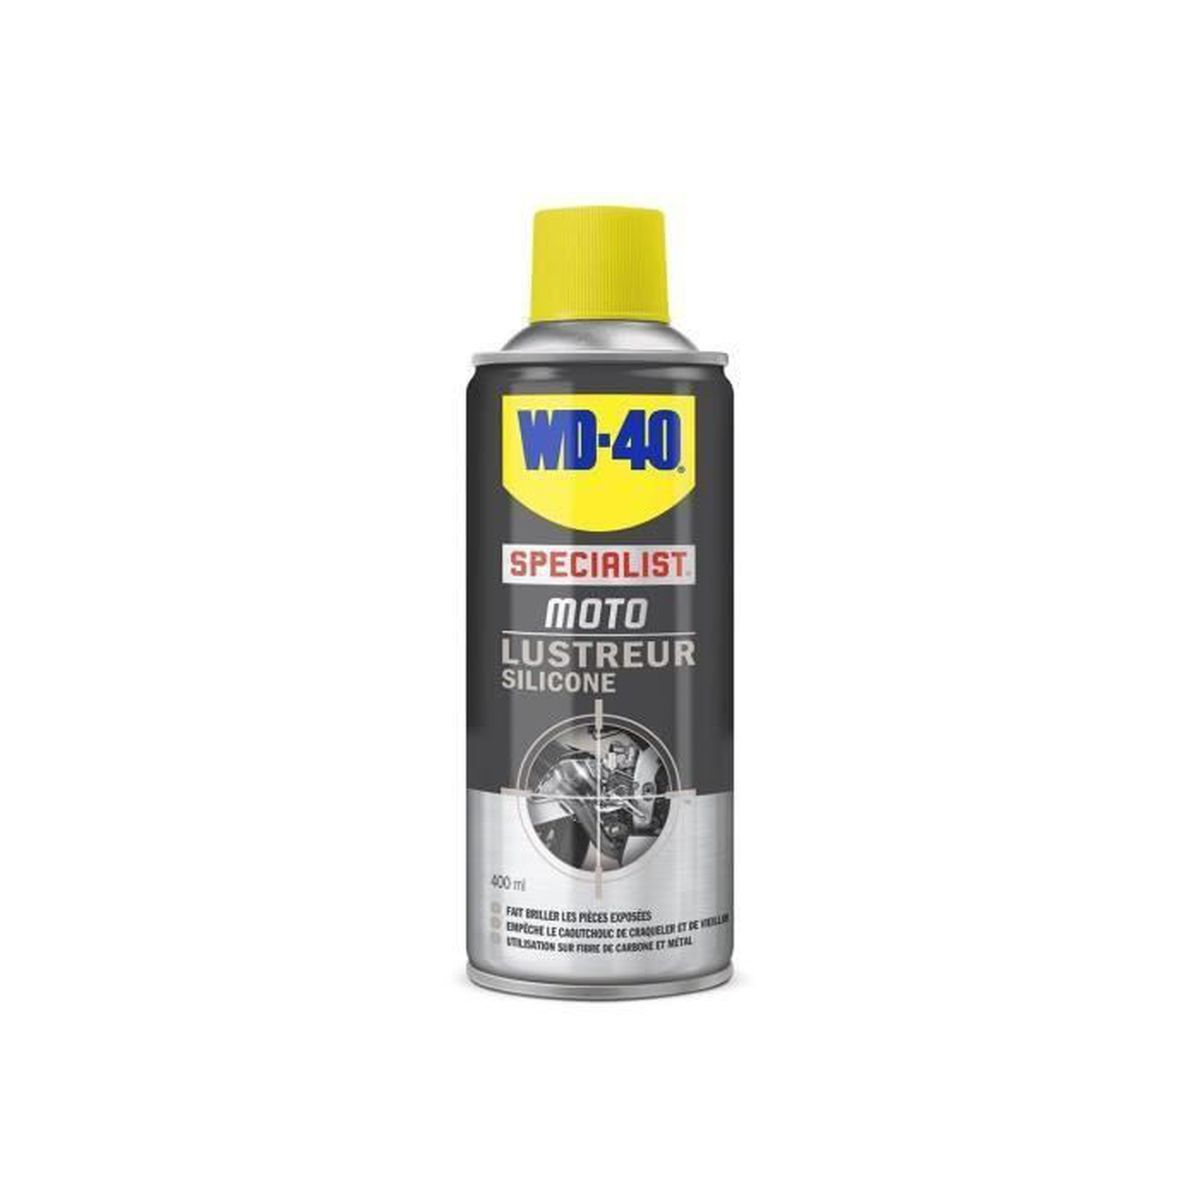 Lustreur silicone moto WD40 400ml